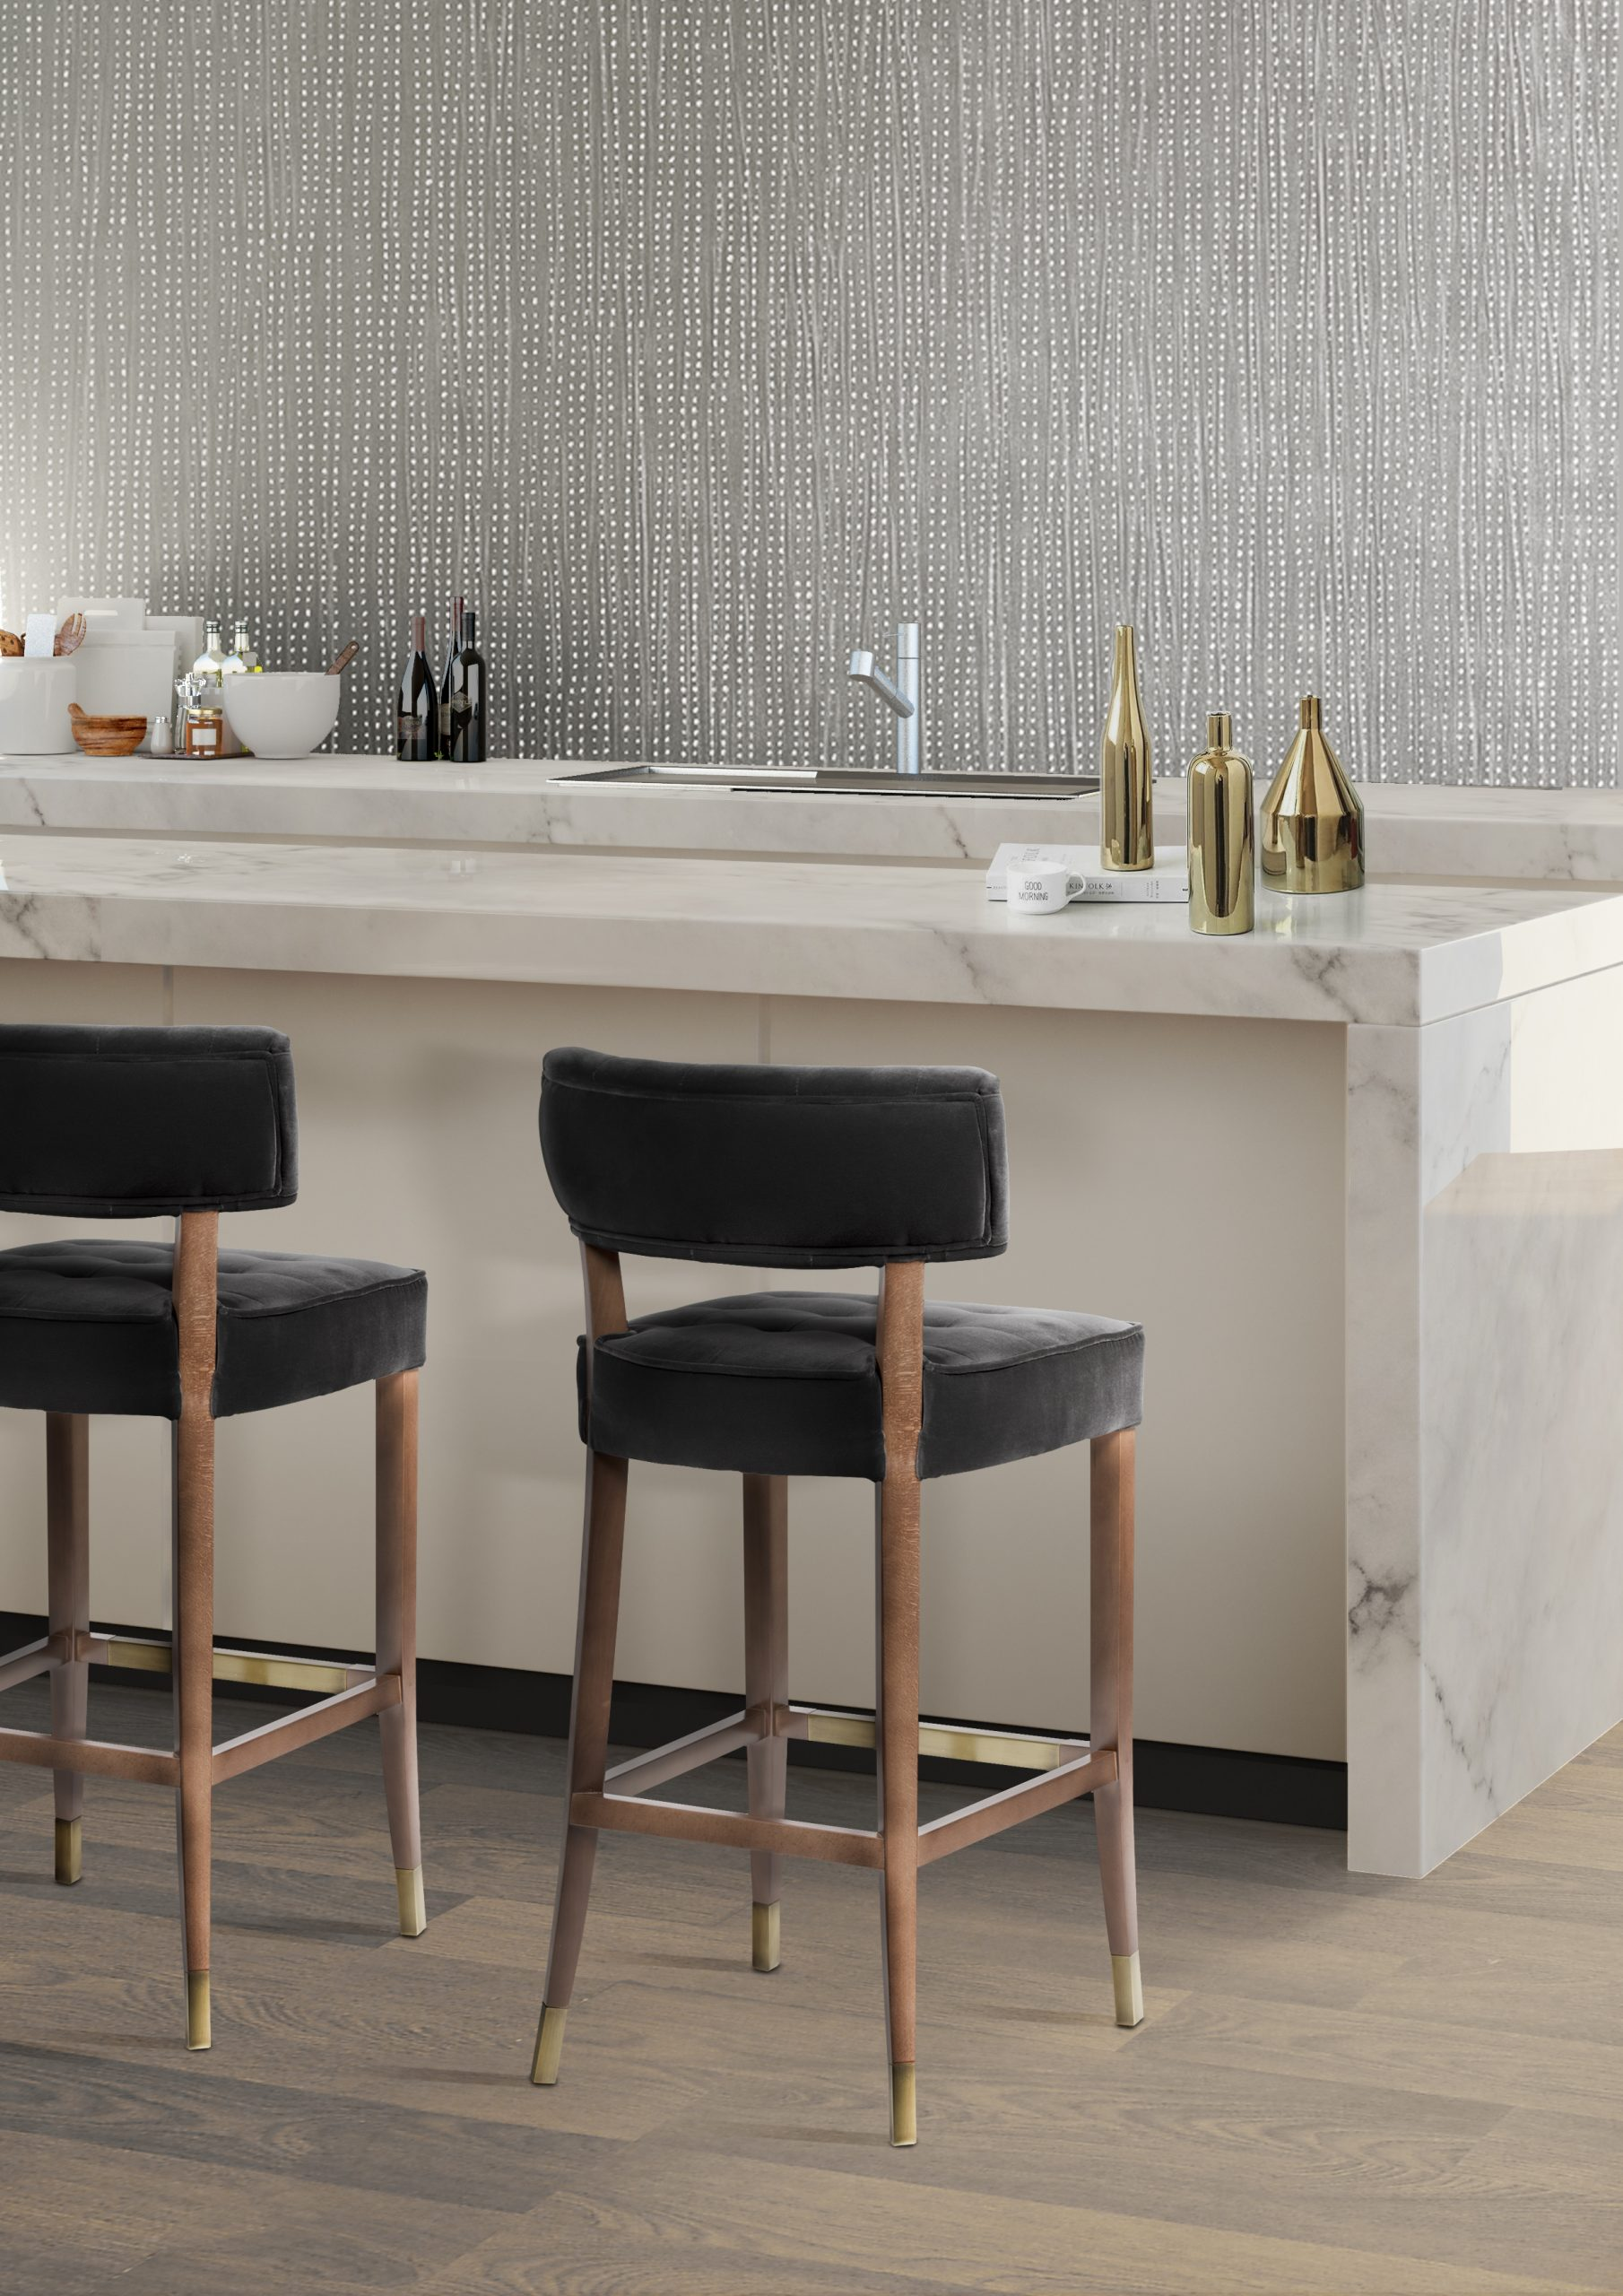 Modern Minimalist Design: Trendy Chairs That Perfectly Suit Your Minimalist Lifestyle modern minimalist Modern Minimalist Design: Chairs That Suit Your Minimalist Lifestyle zulu barchair kitchen scaled